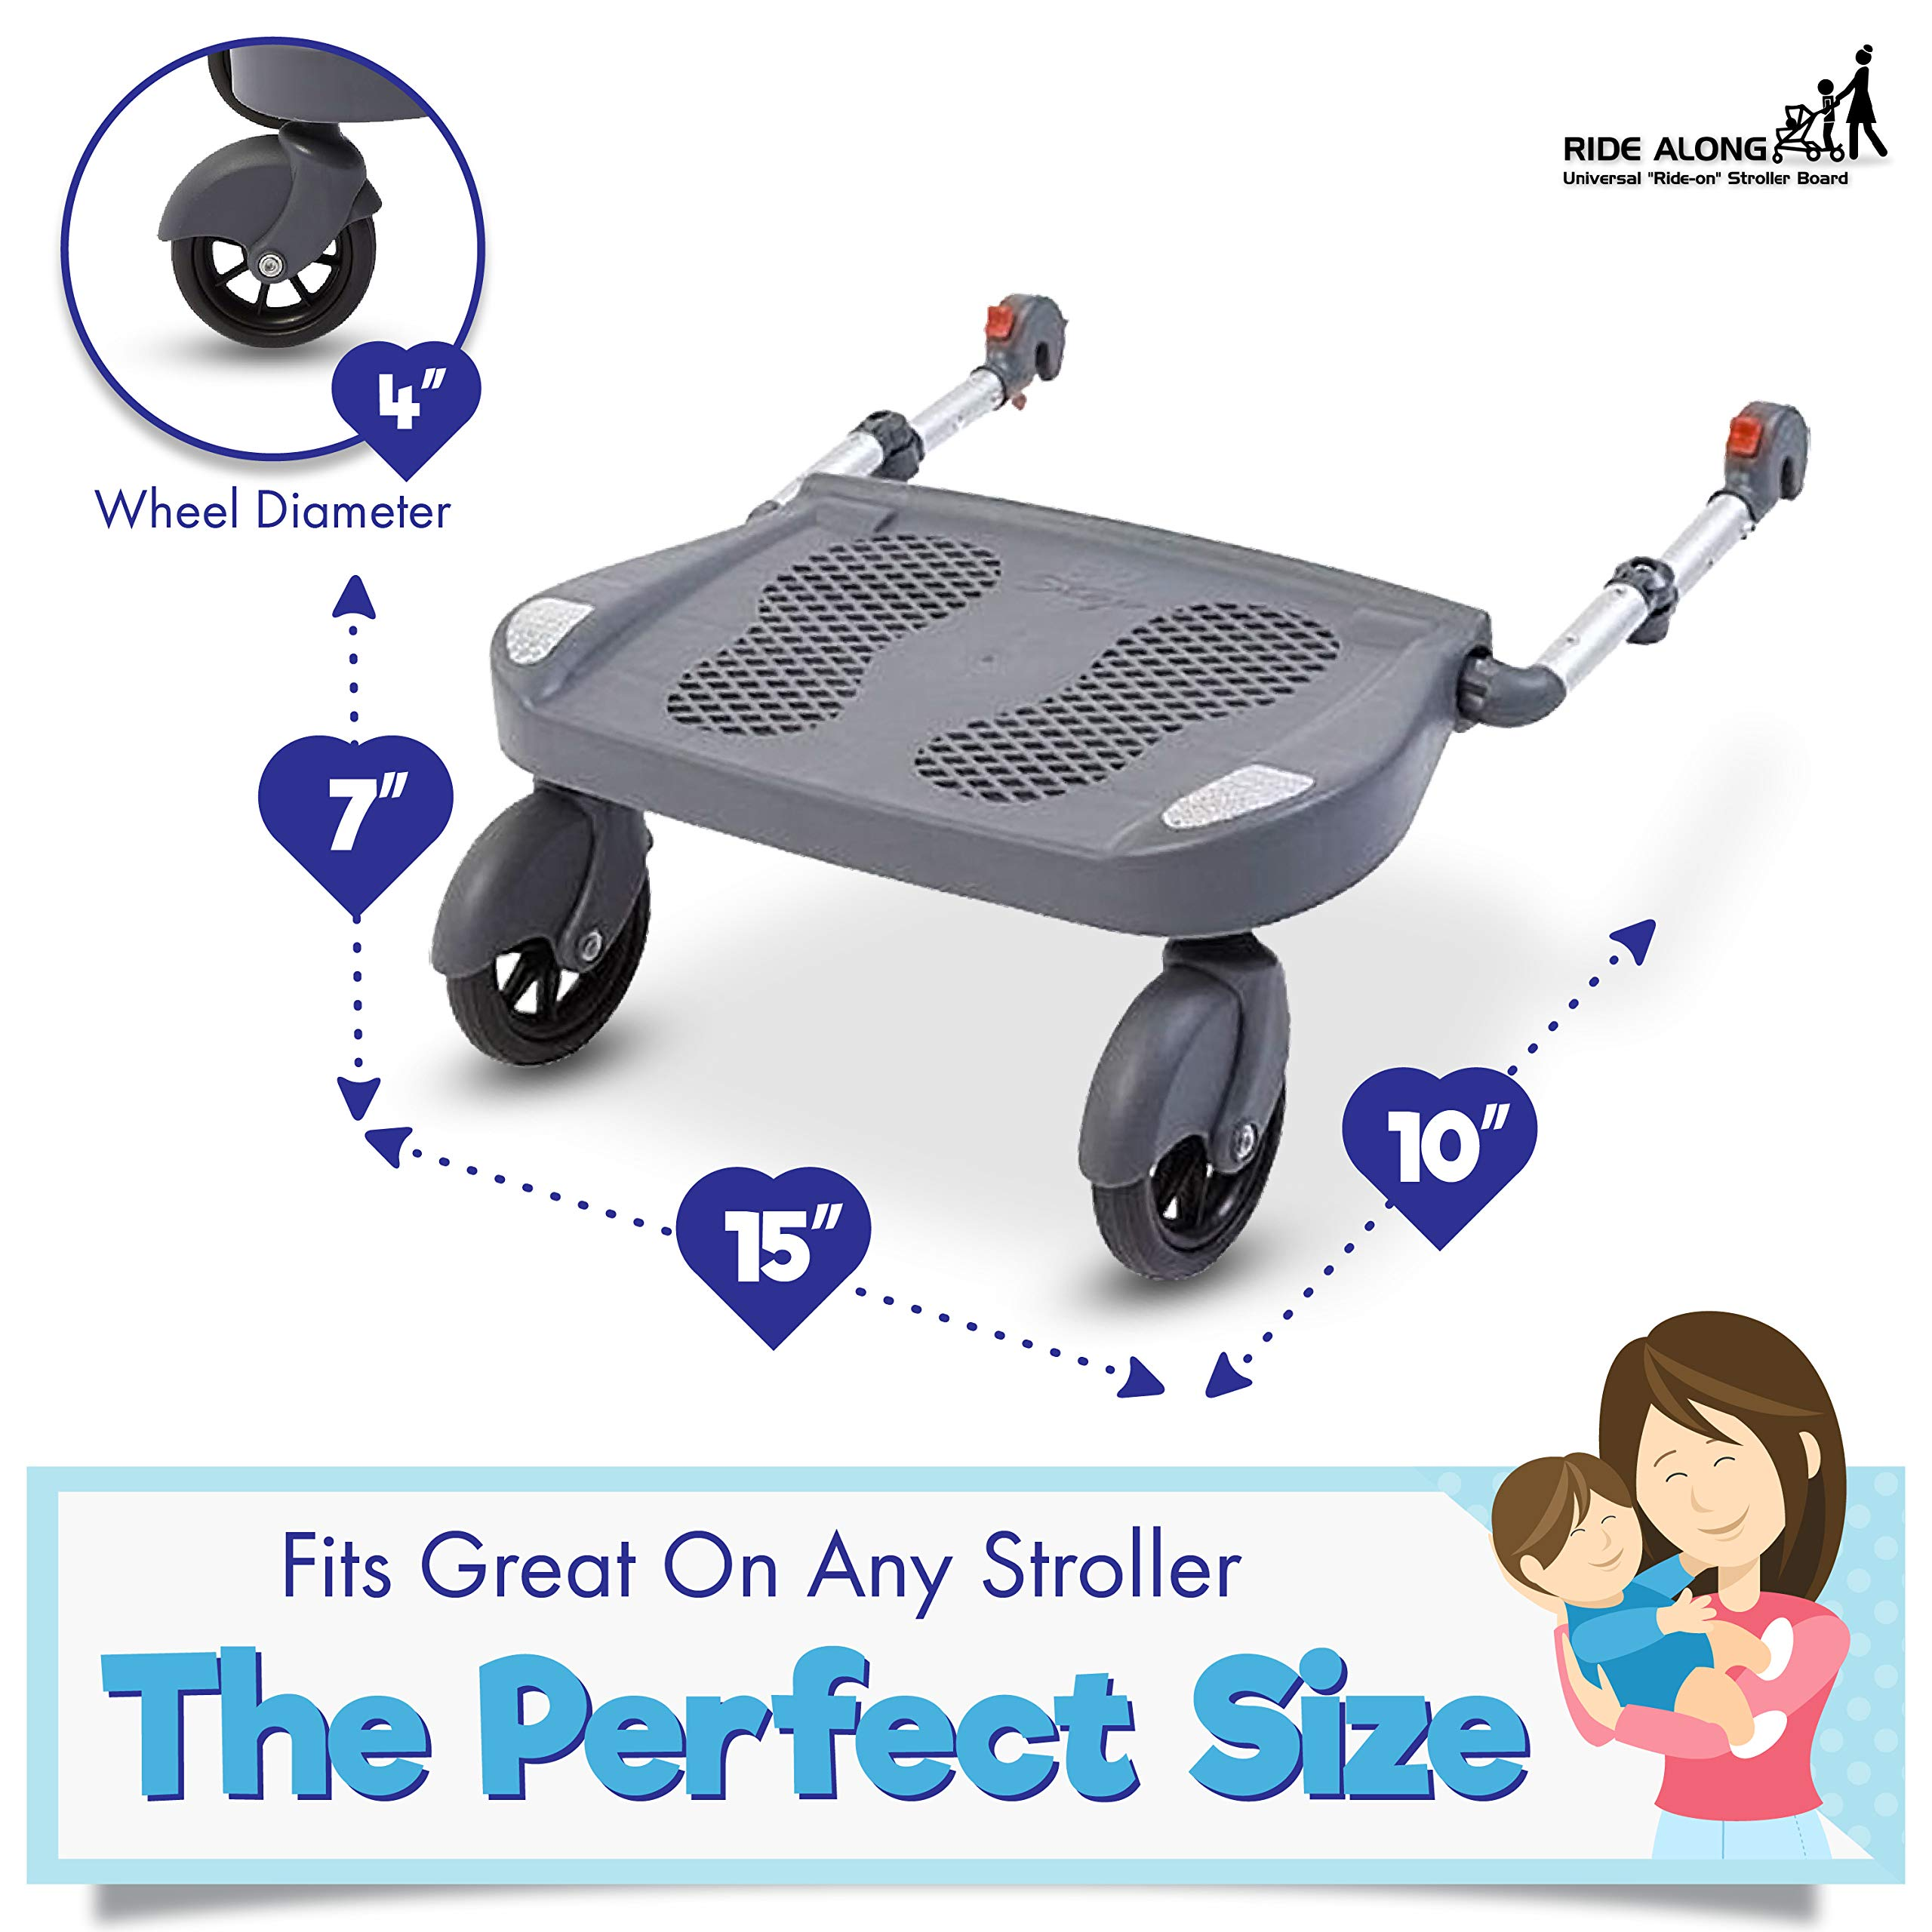 Ride Along - Universal Mount Ride-On Stroller Board Toddler Bump-Free Anti-Slip Buggy Stand by EZ step (Image #7)